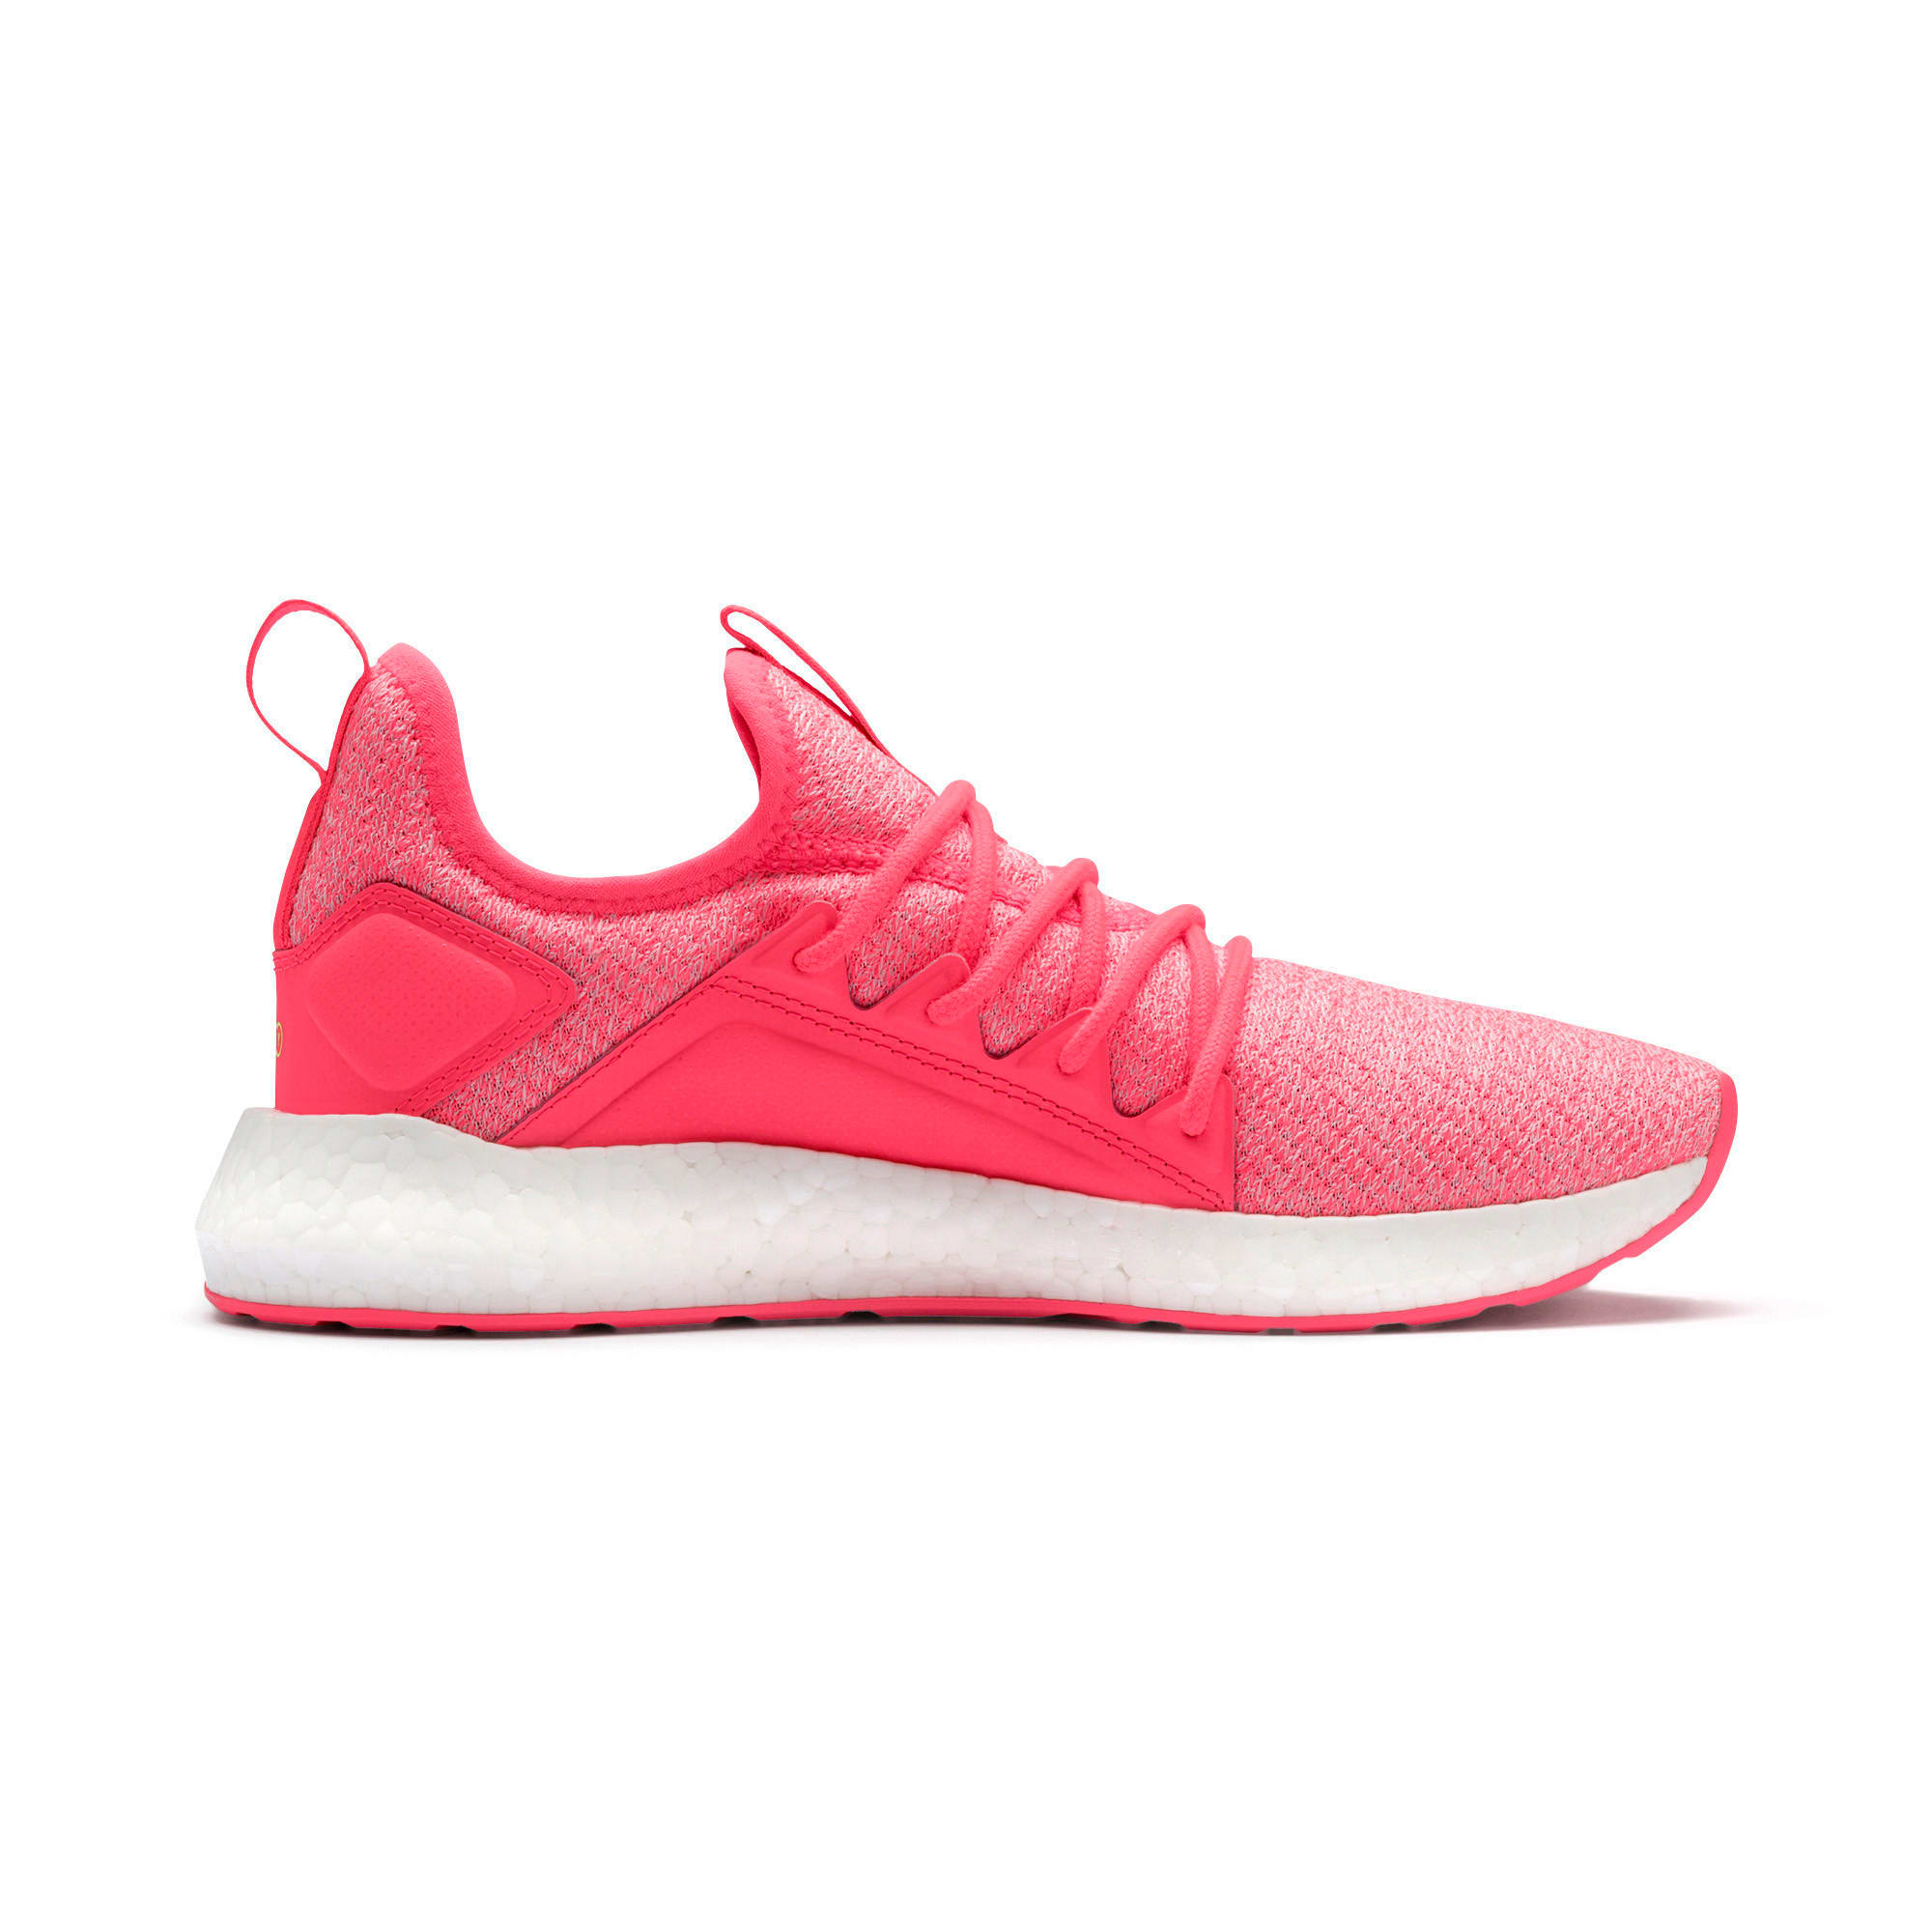 Thumbnail 5 of NRGY Neko Knit Women's Running Shoes, Pink Alert-Puma White, medium-IND